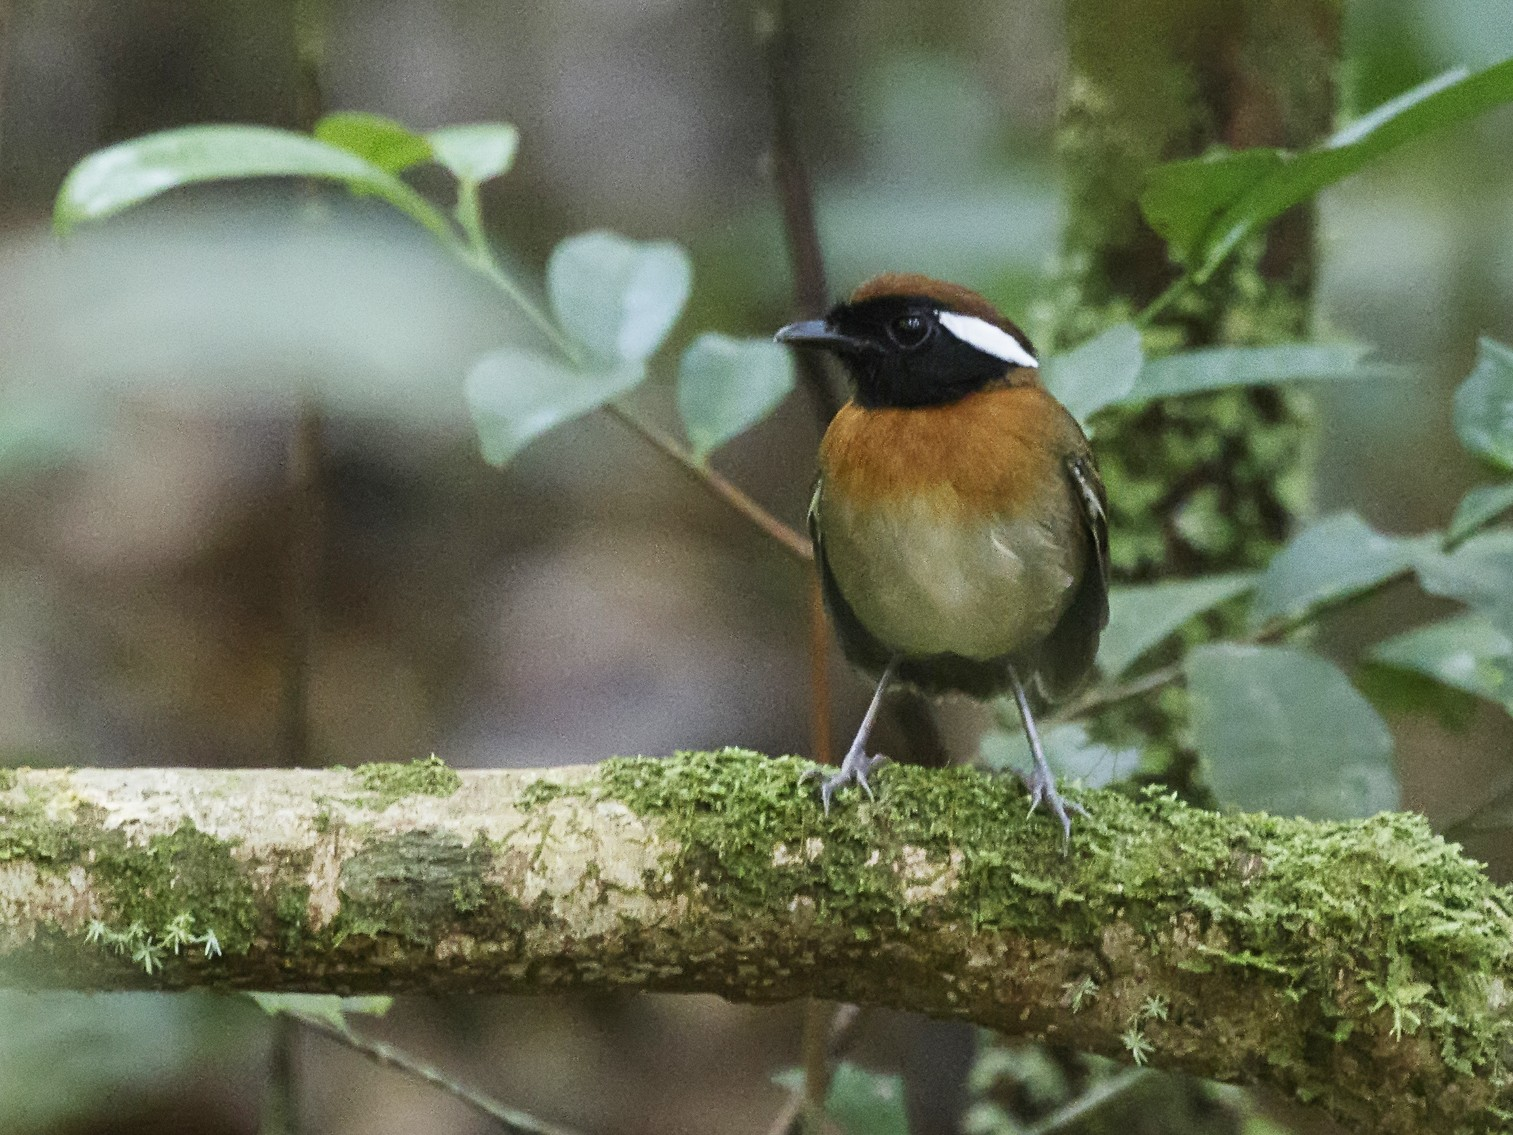 Chestnut-belted Gnateater - Silvia Faustino Linhares